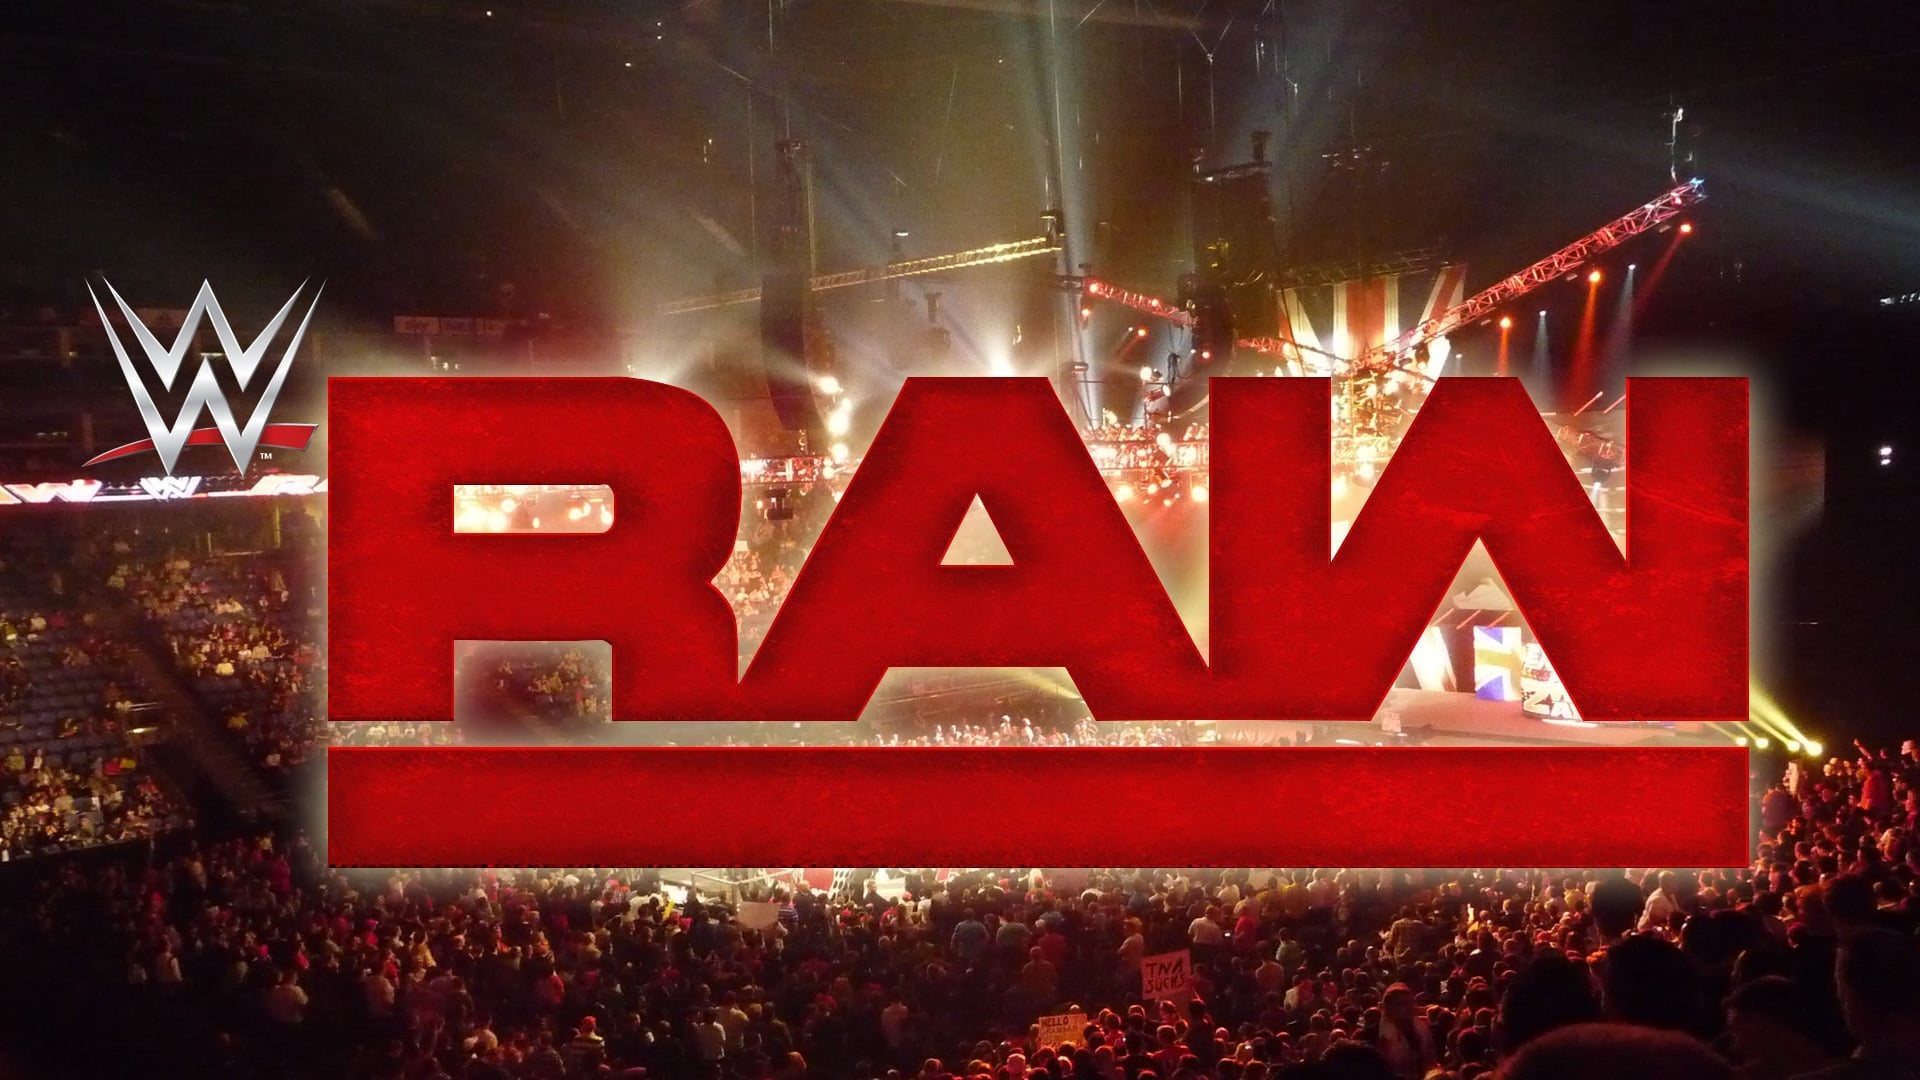 WWE Raw - Season 20 Episode 13 : March 26, 2012